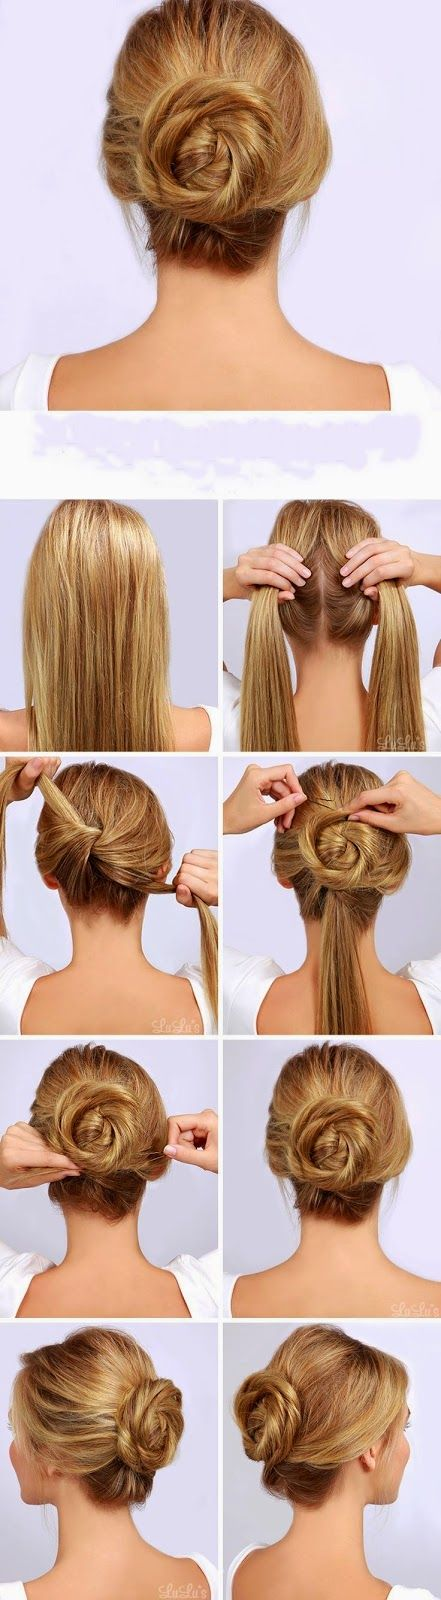 Diy Hairstyles 41 diy cool easy hairstyles that real people can actually do at home 5 Gorgeous Diy Hairstyle Ideas To Make You Look Stylish